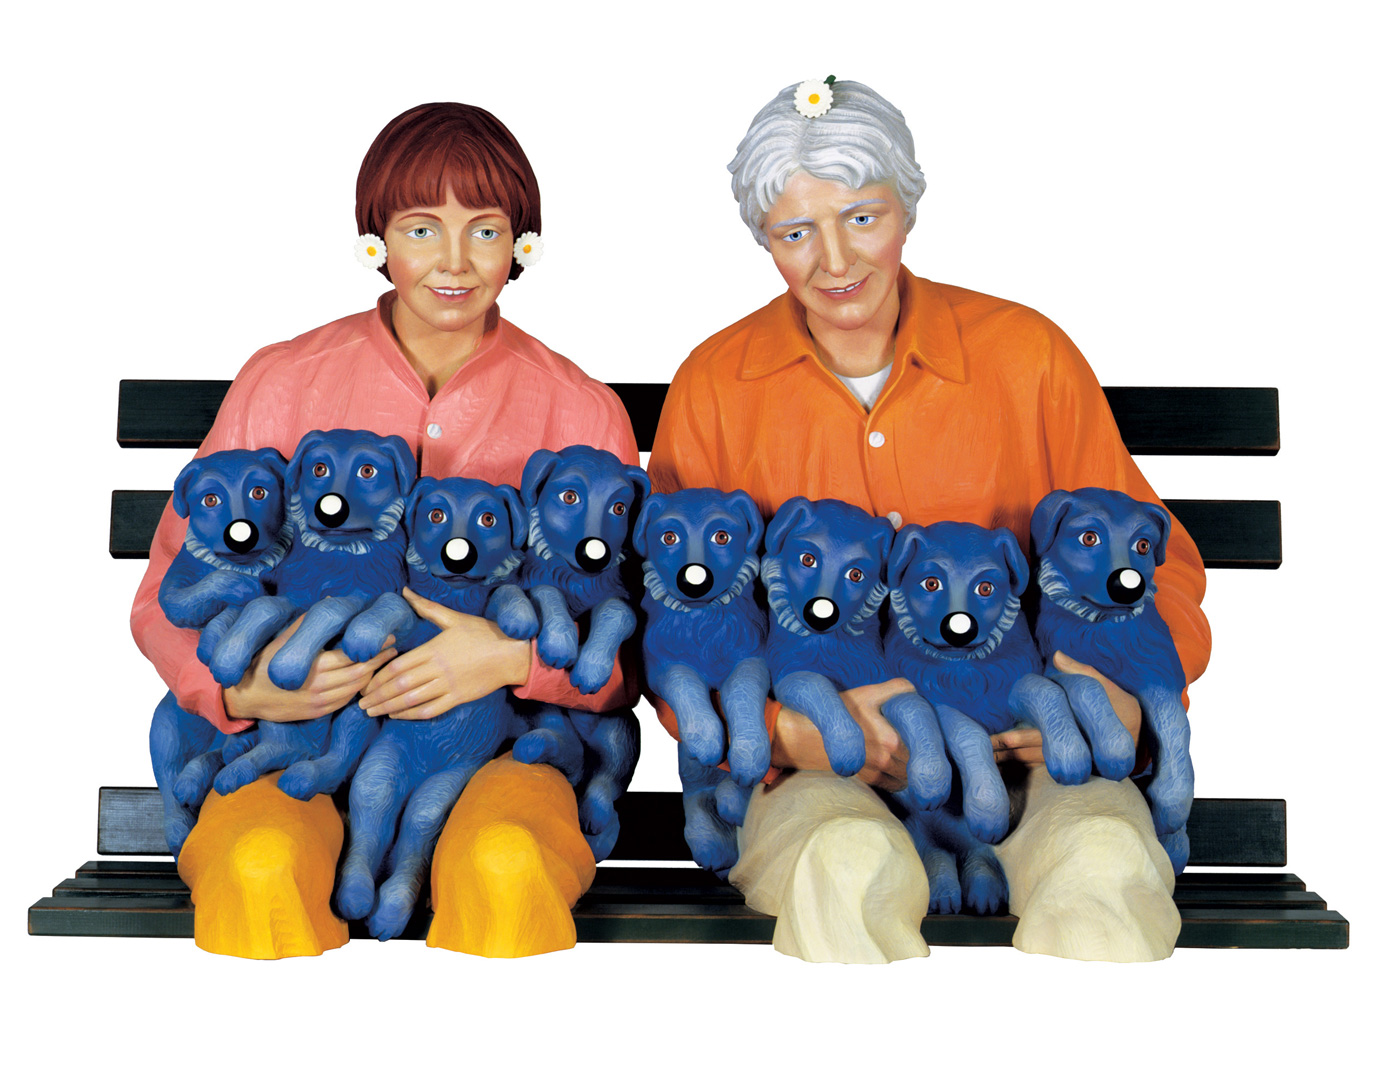 Jeff Koons - String of Puppies, 1988, polychromed wood